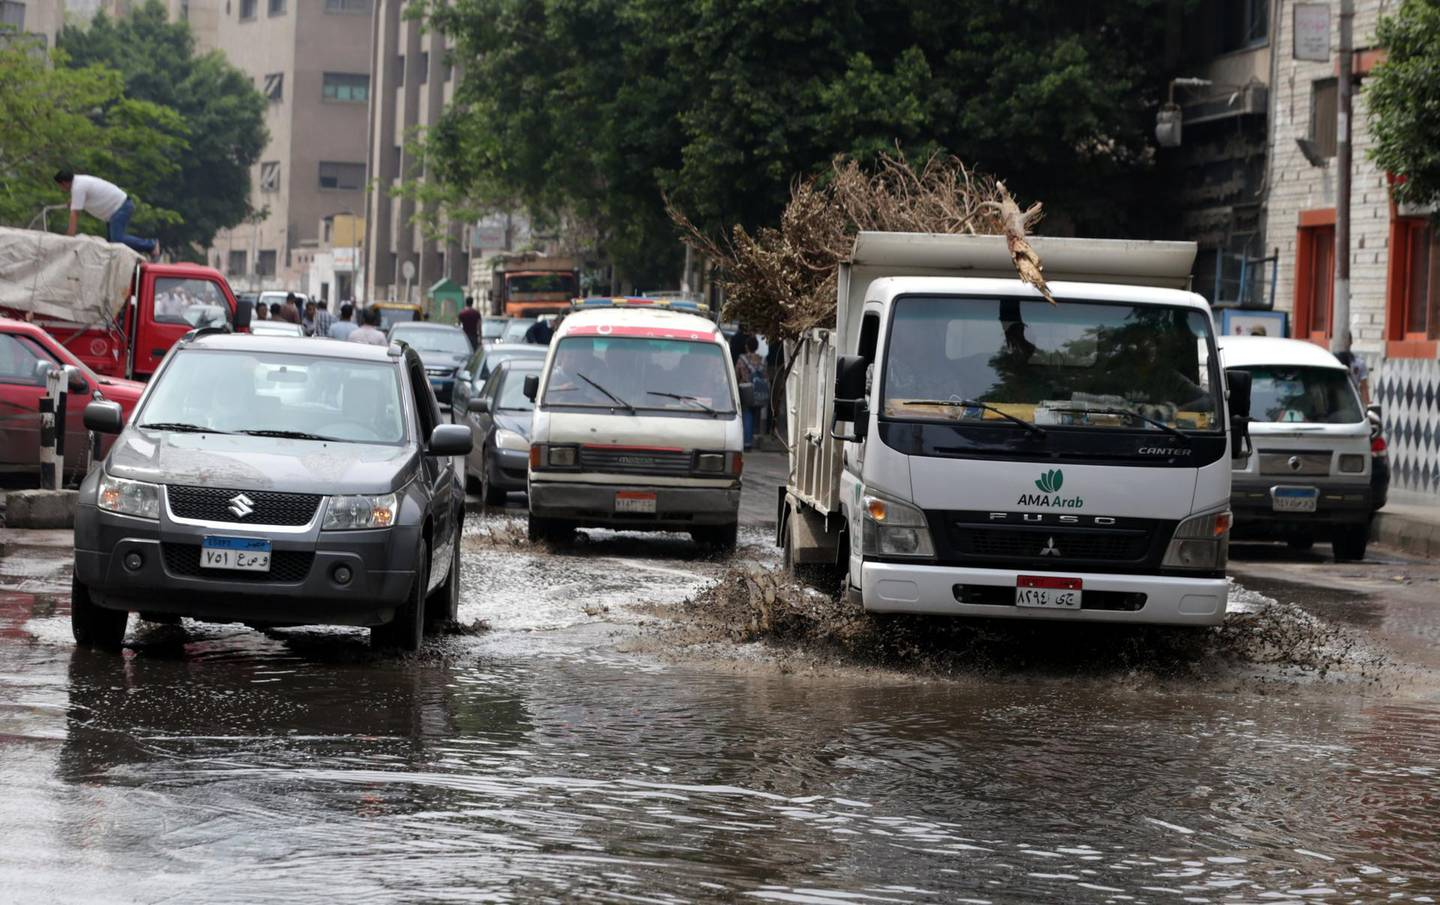 epa06693760 Cars drive through a flooded street after a flash flood affected Cairo, Egypt, 26 April 2018. Recent rainfalls have flooded parts of Egypt, temperatures dropped to six degrees Celsius.  EPA/KHALED ELFIQI